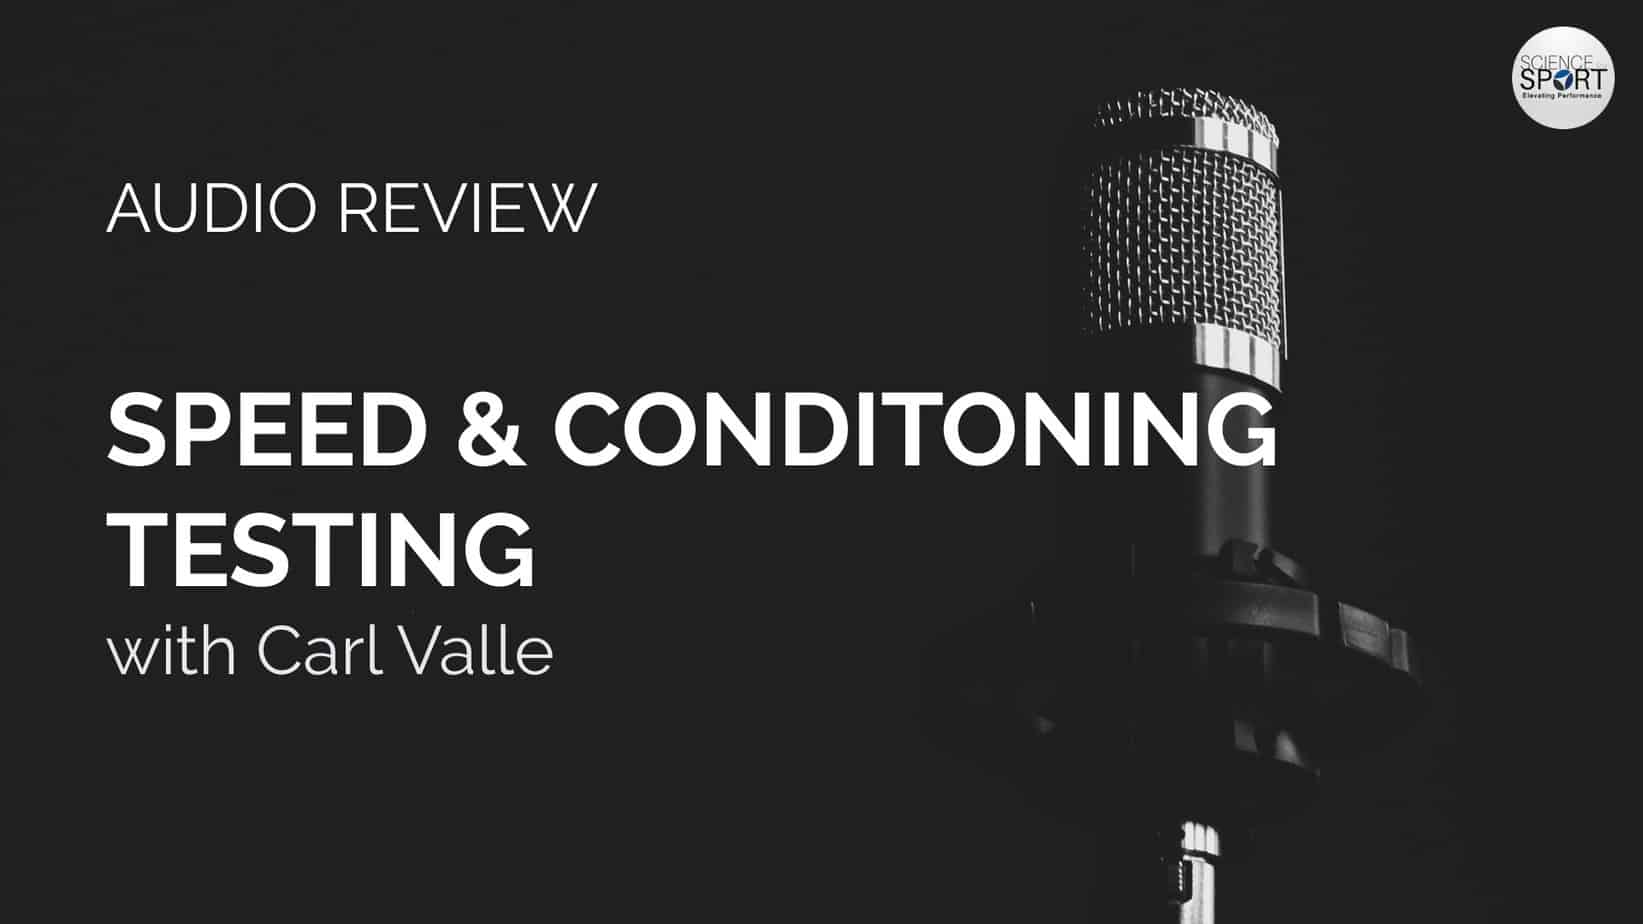 Audio Review - Speed & Conditioning Testing - Carl Valle - Science for Sport